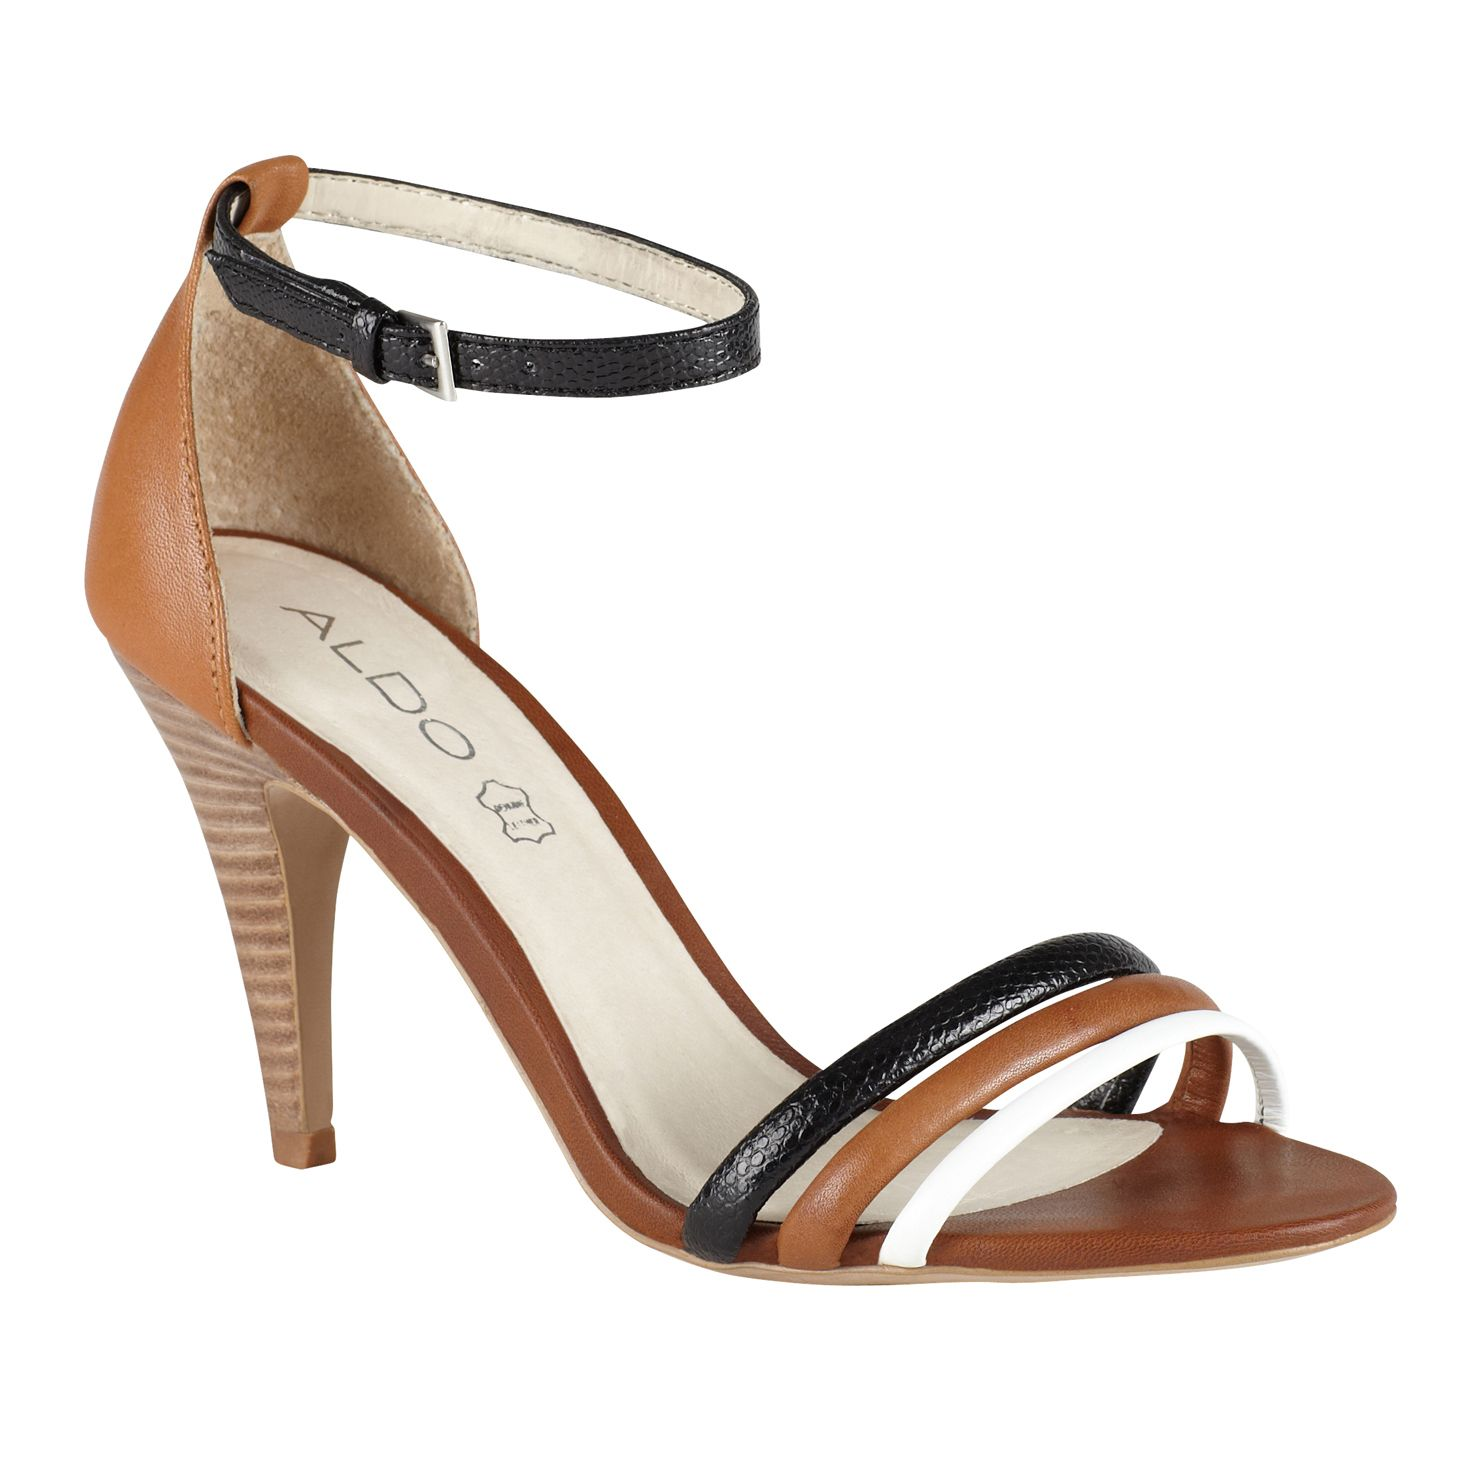 Zewet high heel sandals